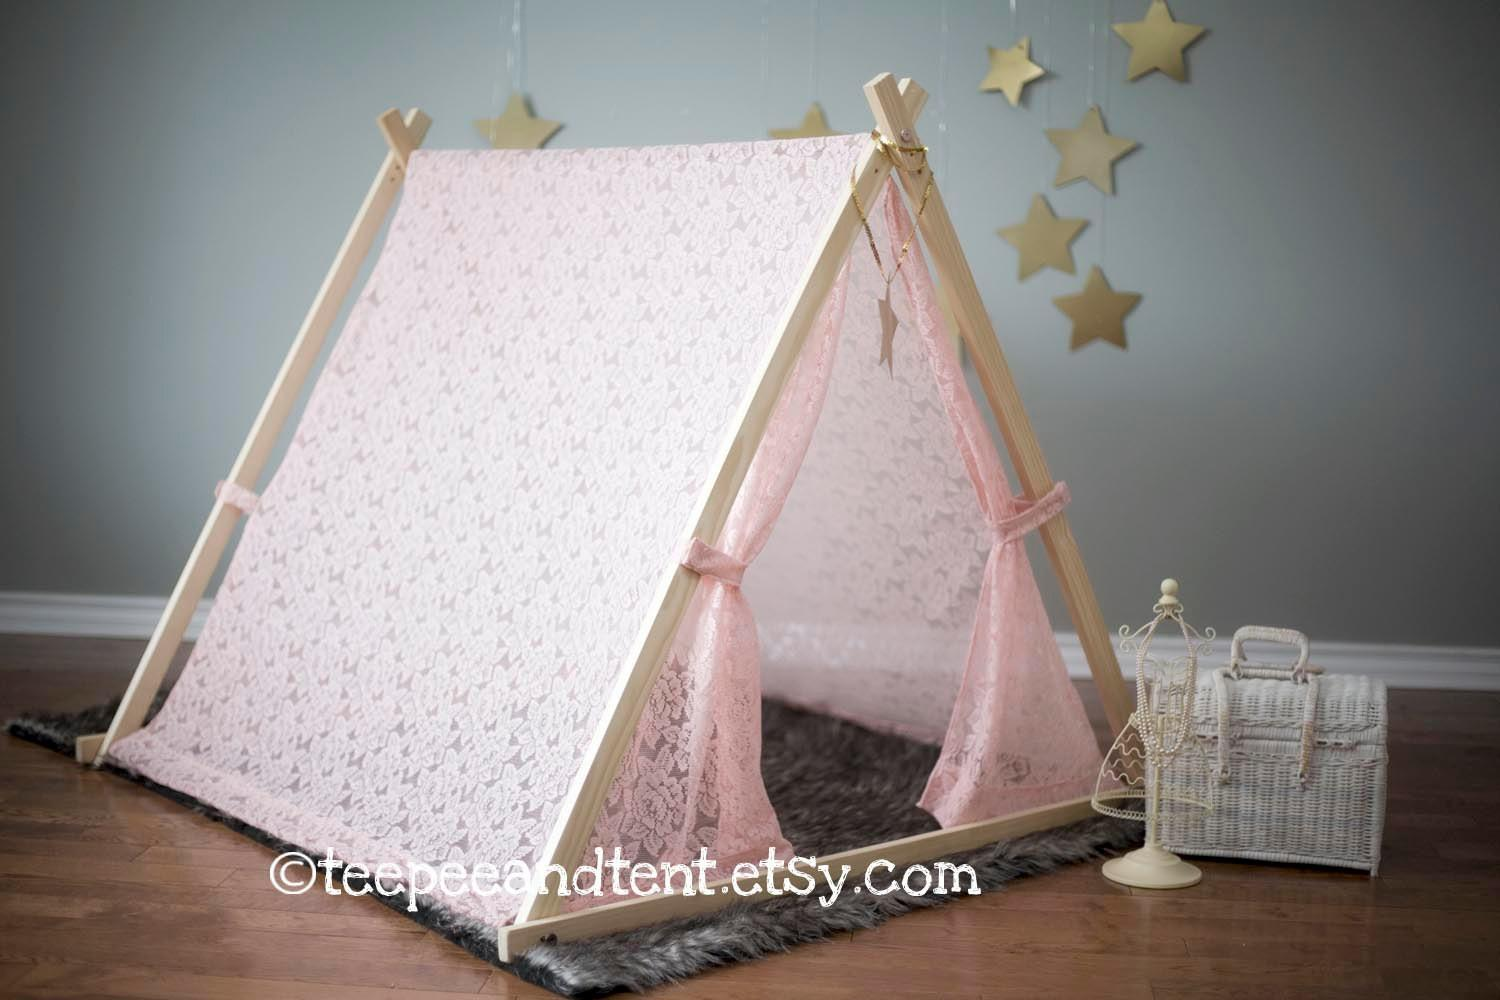 Kids Lace Teepee Play Tent Stock Teepeeandtent Etsy